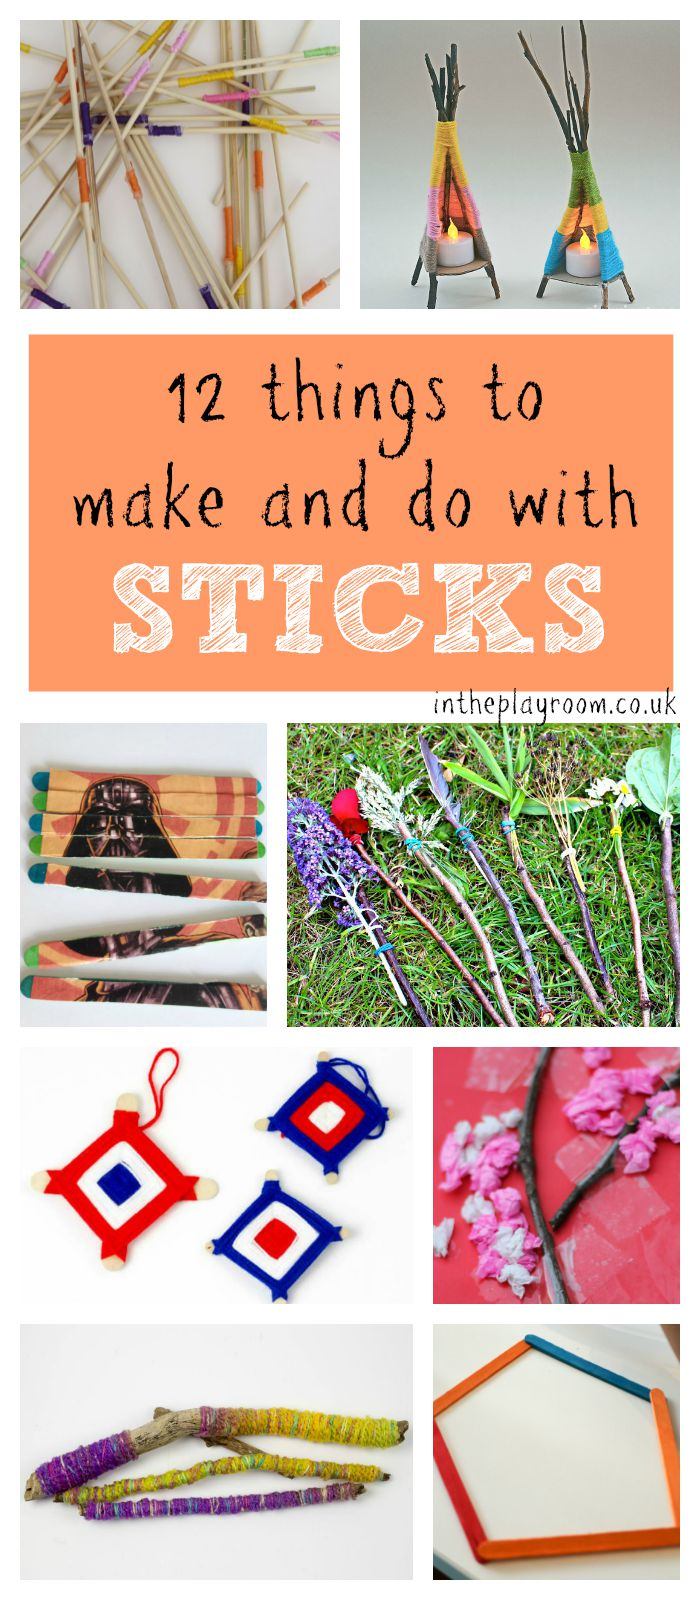 12 Fun Things To Make And Do With Sticks In The Playroom